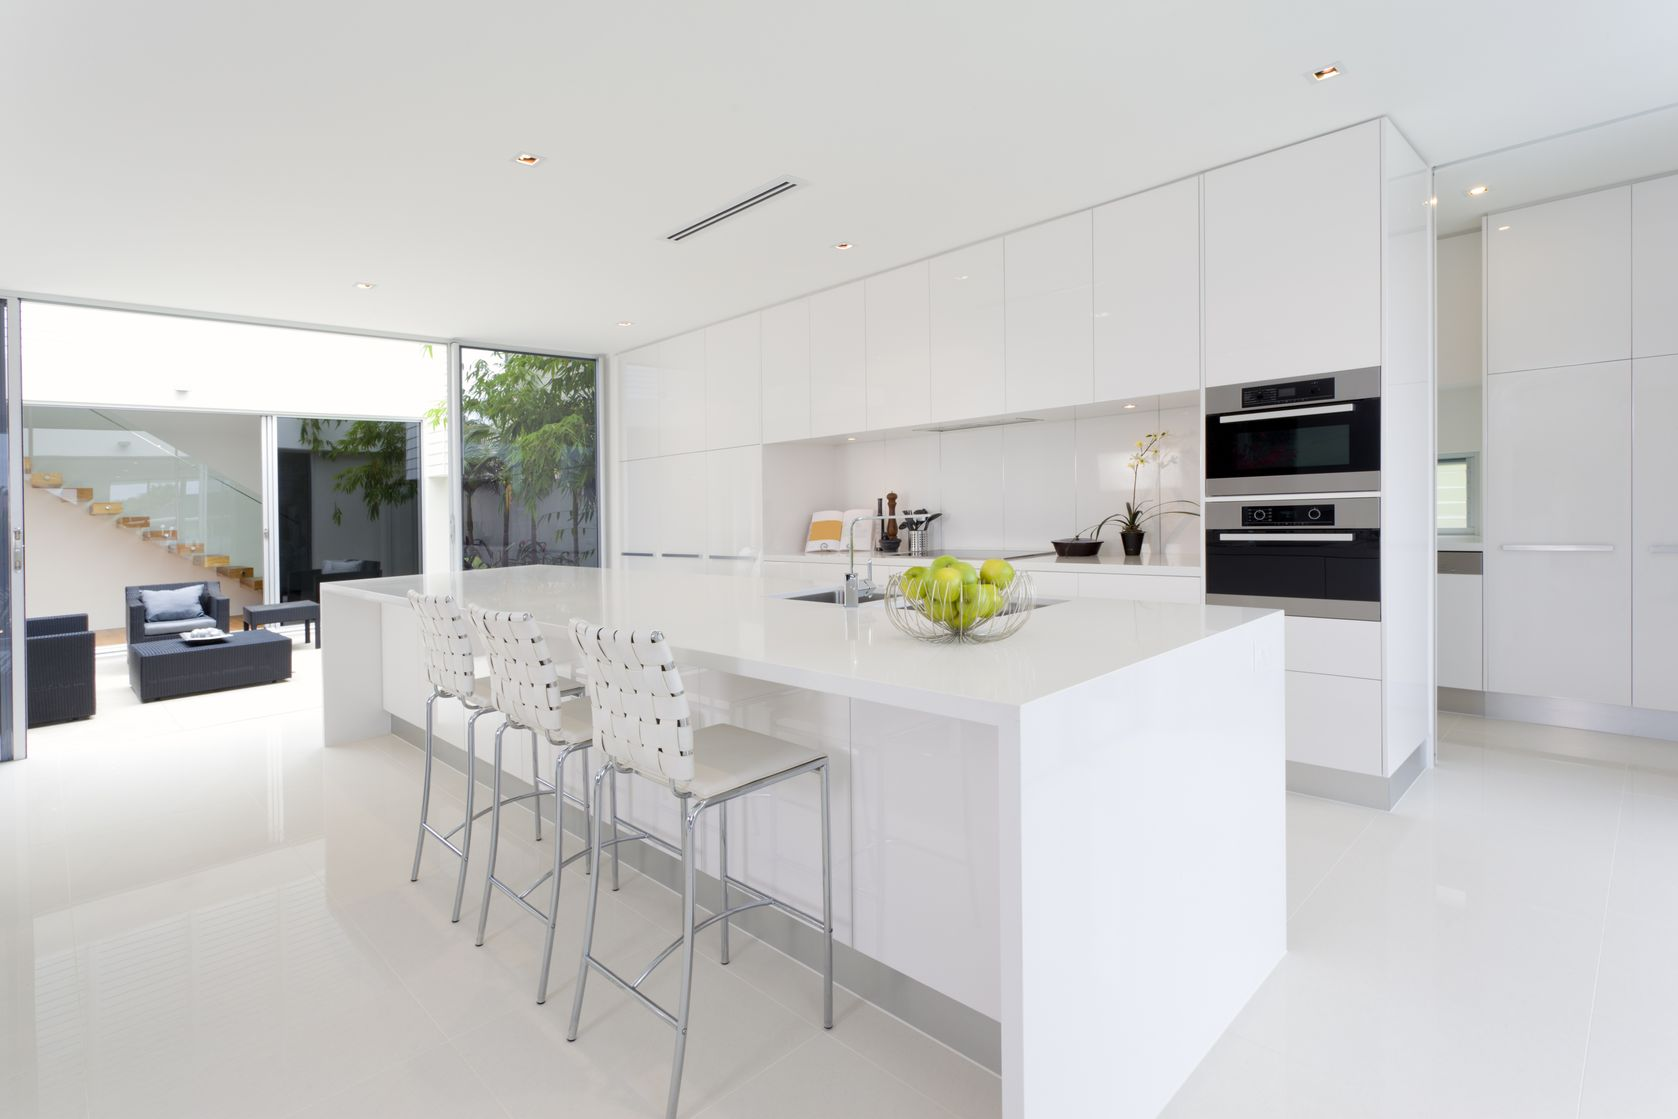 Kitchen Diner Extension Get Consult Microsite Ani Broker 2